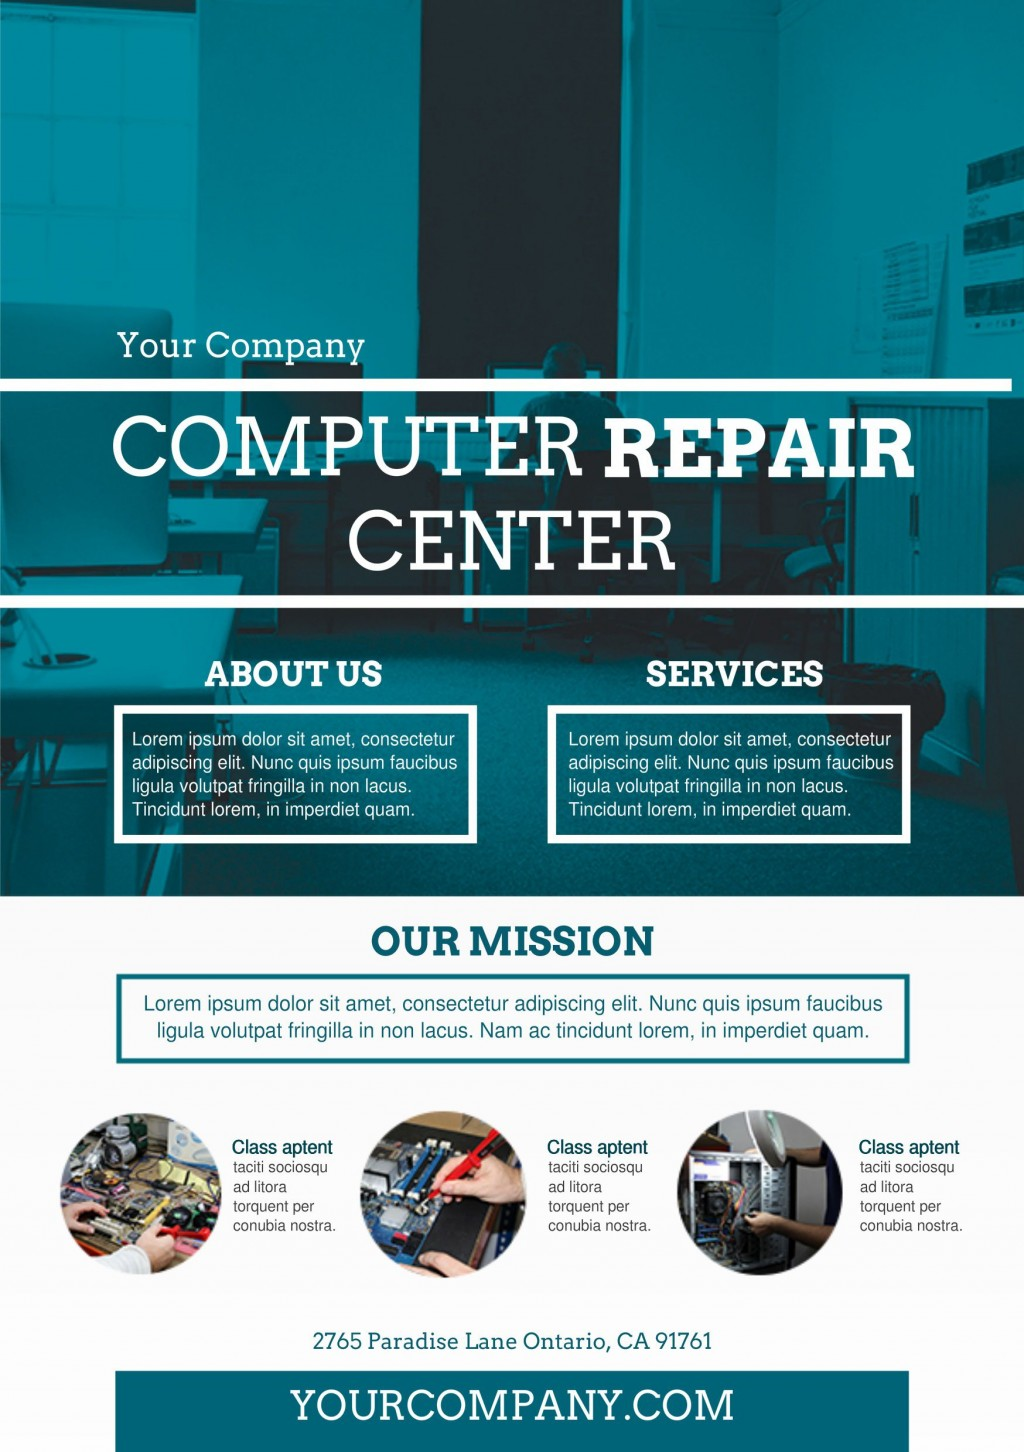 002 Awful Computer Repair Flyer Template High Resolution  Word Busines FreeLarge